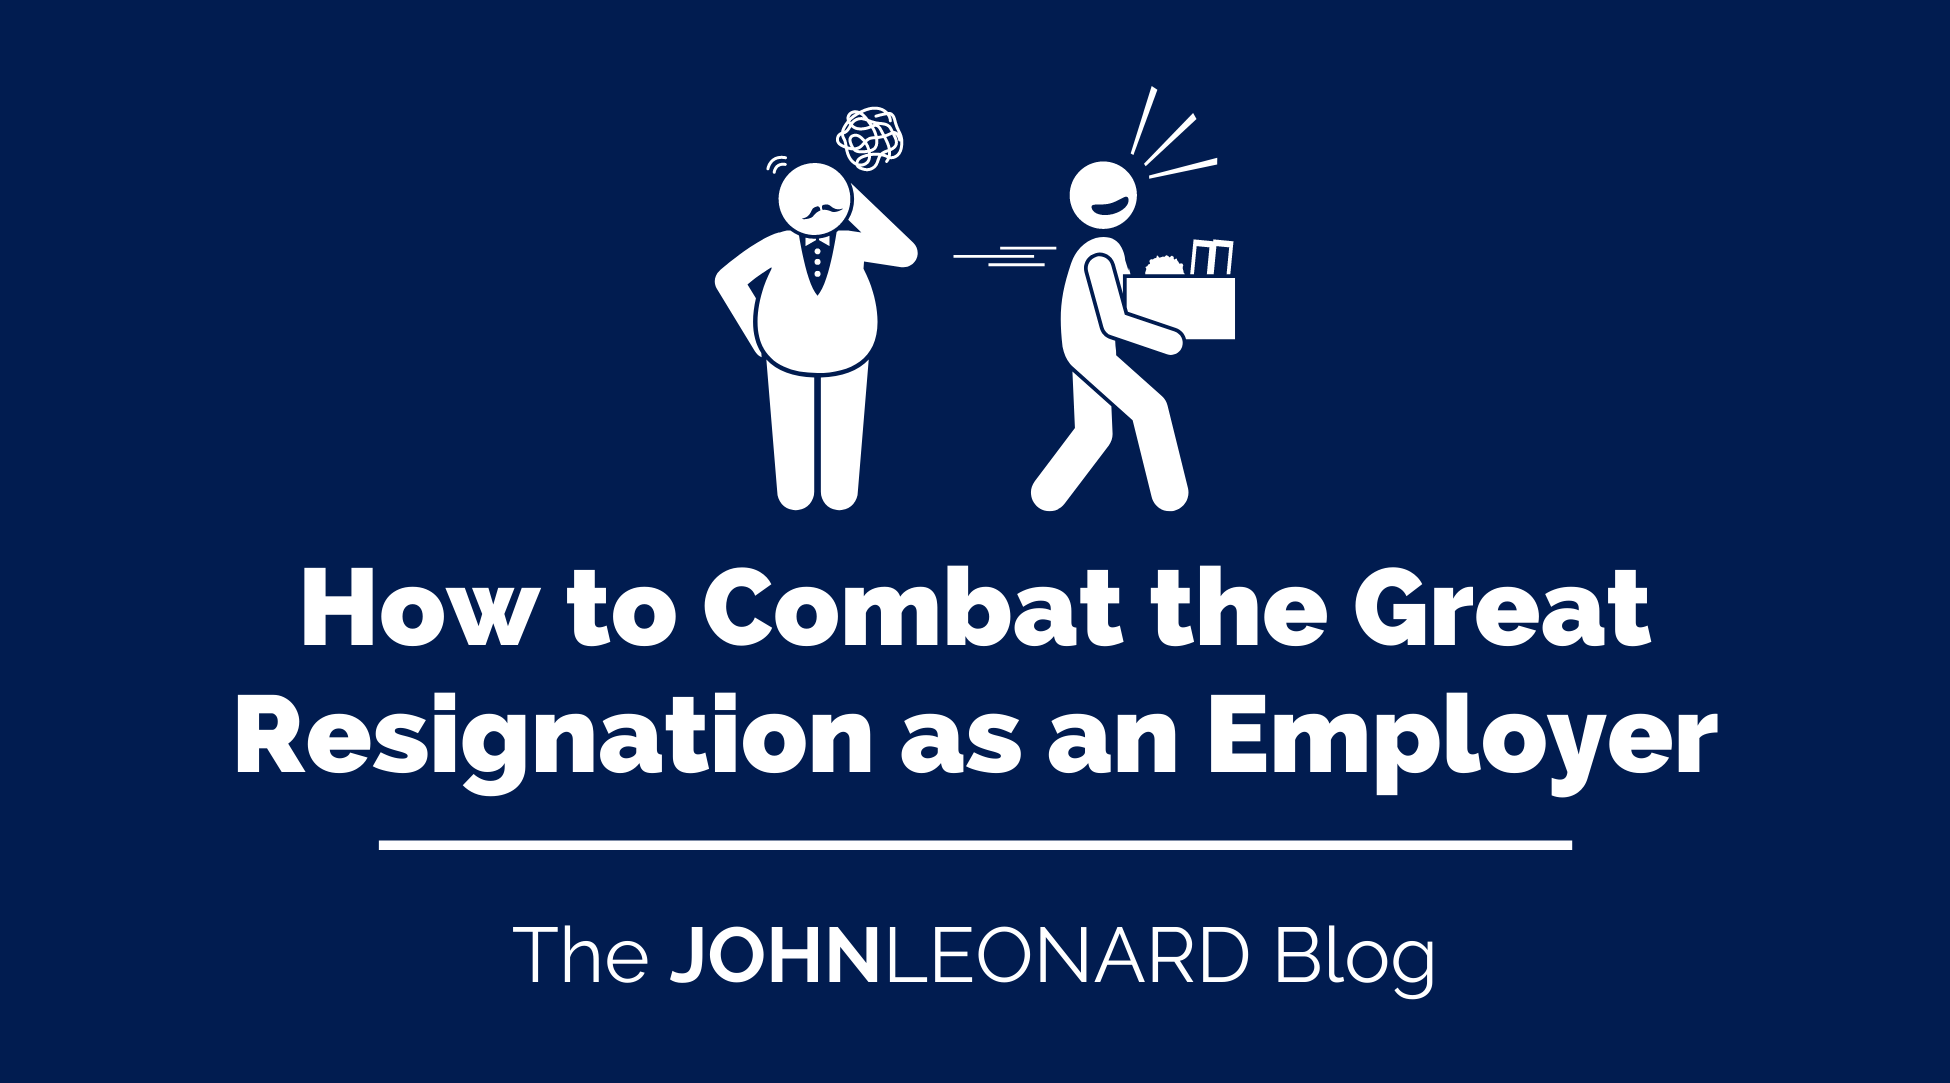 How to Combat the Great Resignation as an Employer